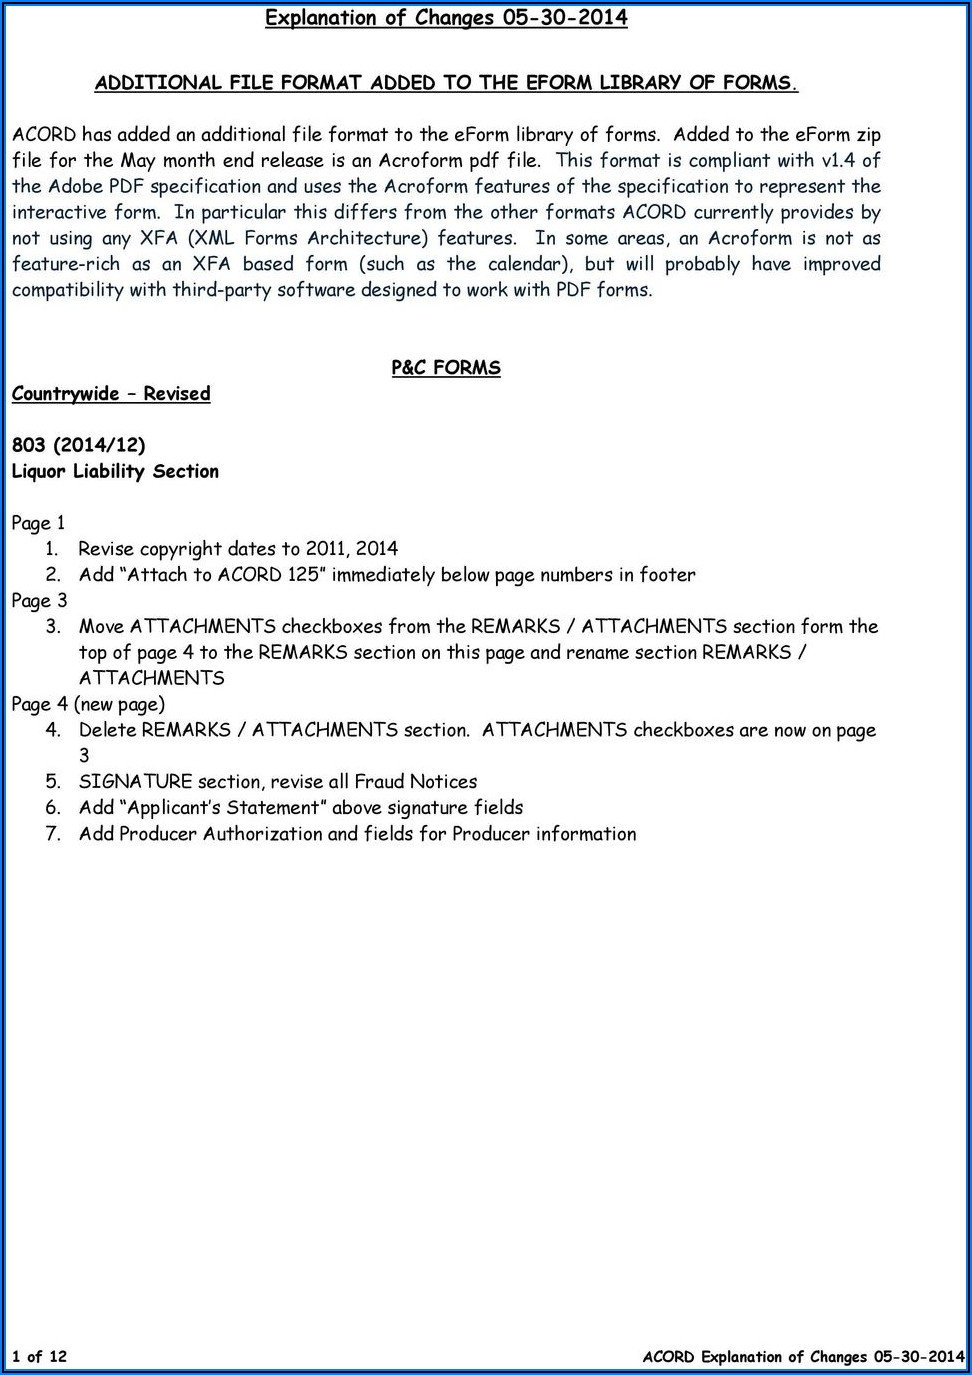 Free Acord Forms Download